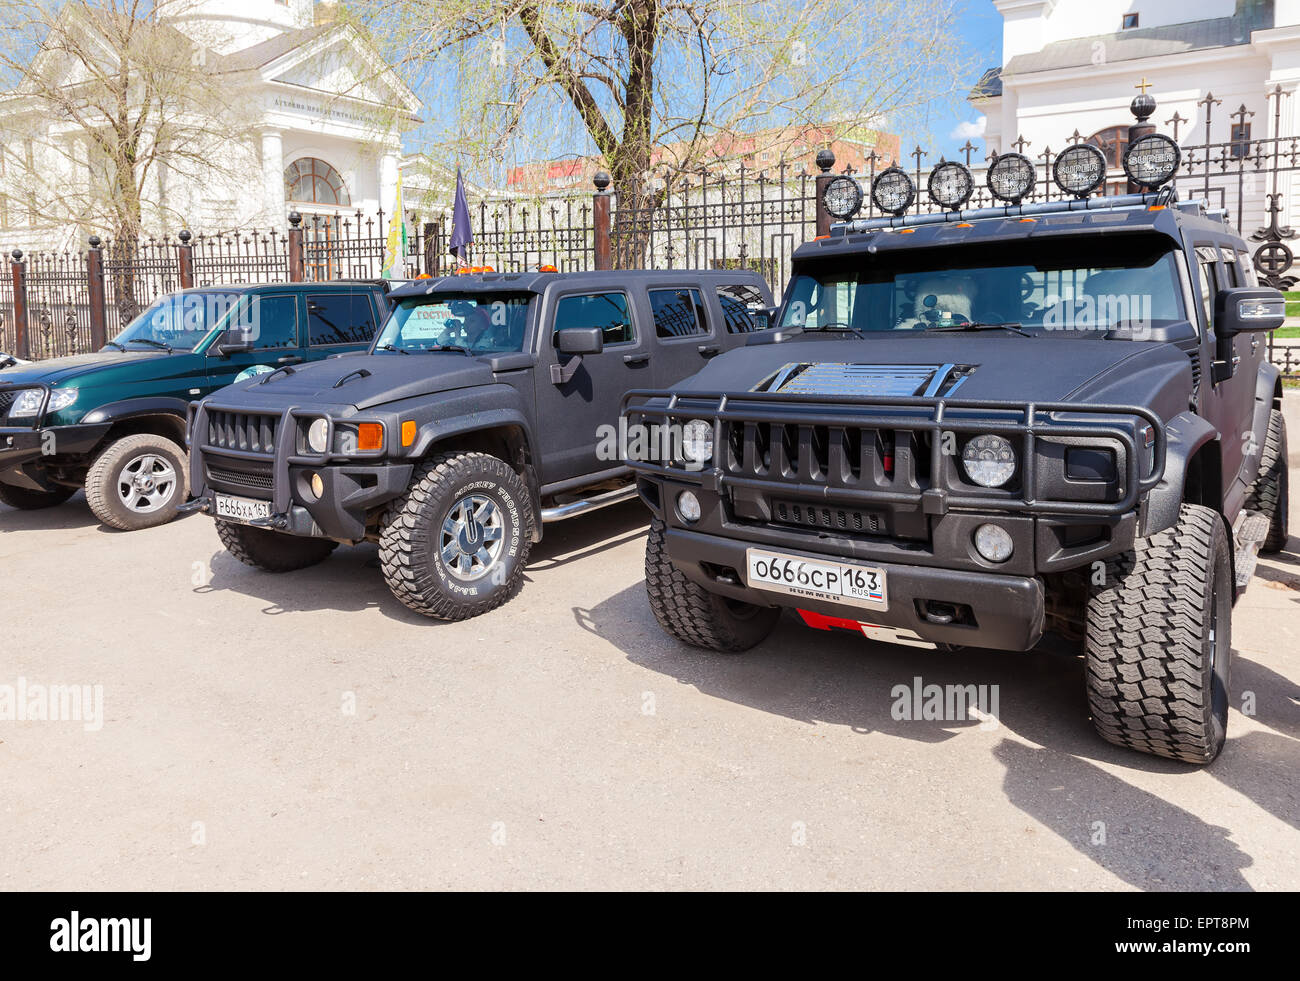 Hummer SUVs on the streets in sunny summer day - Stock Image